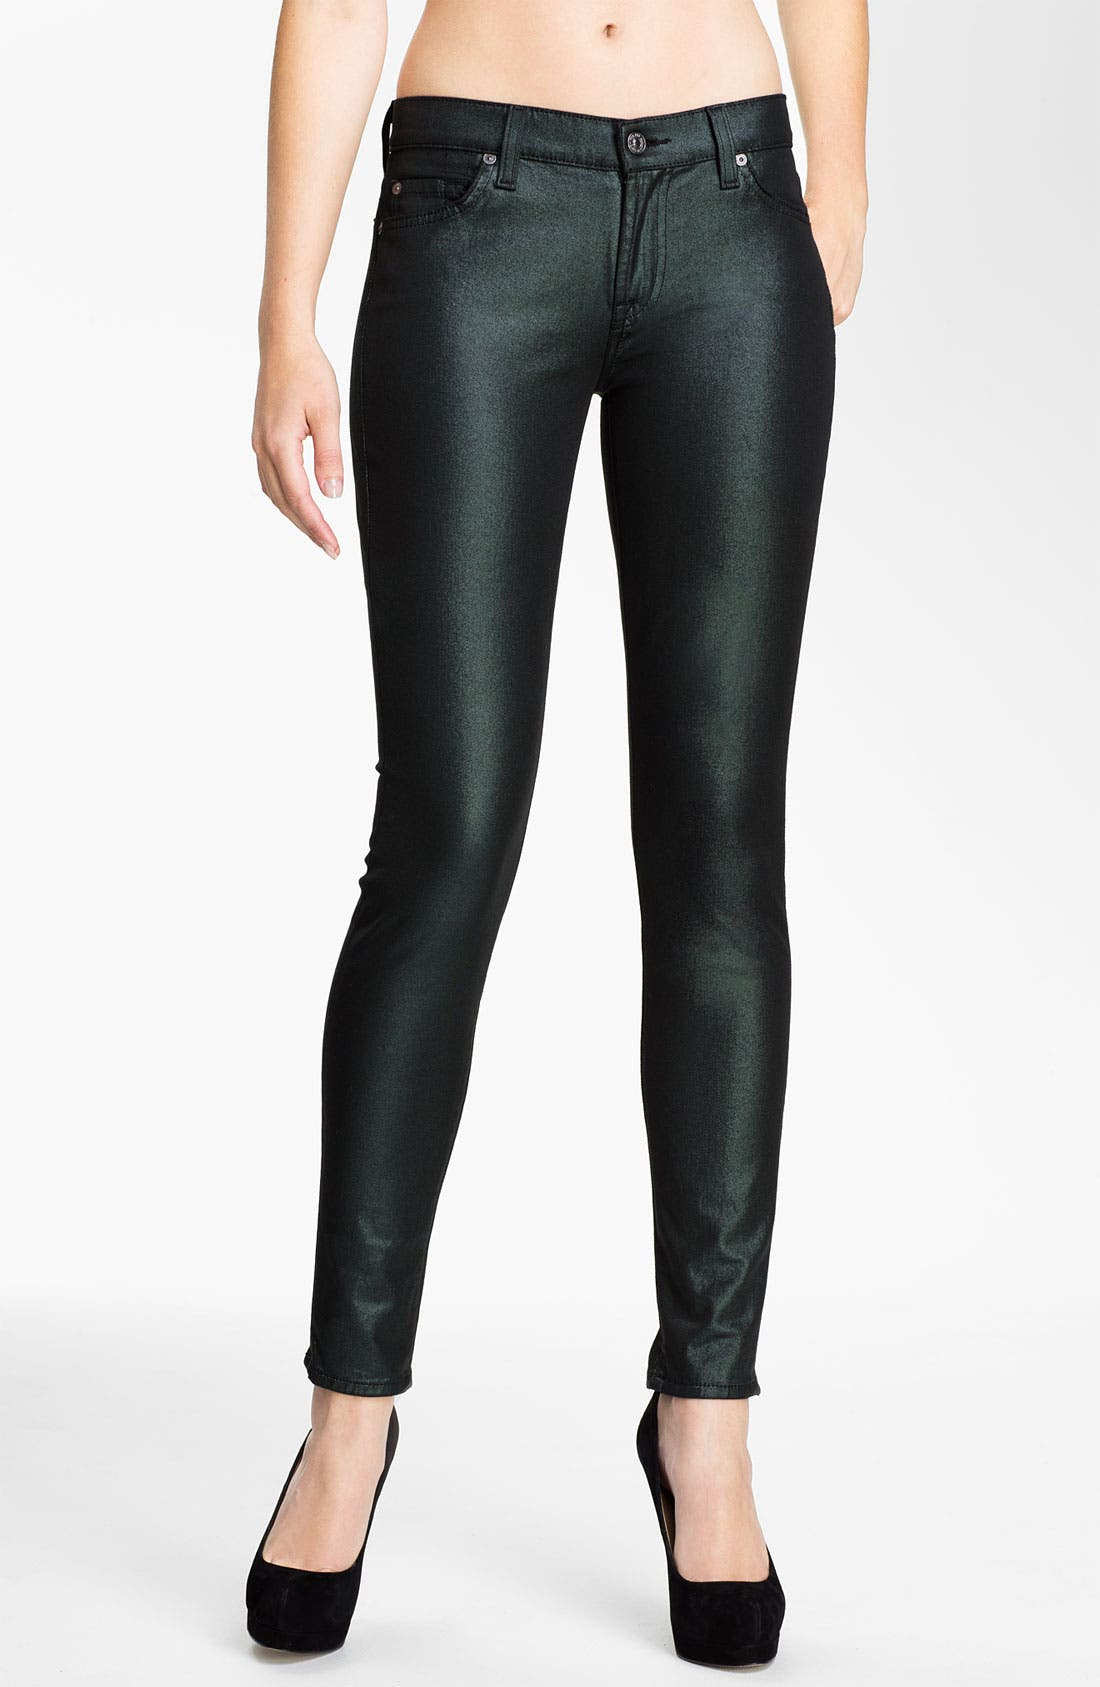 Main Image - 7 For All Mankind® 'The Skinny' Coated Jeans (Metallic Emerald)